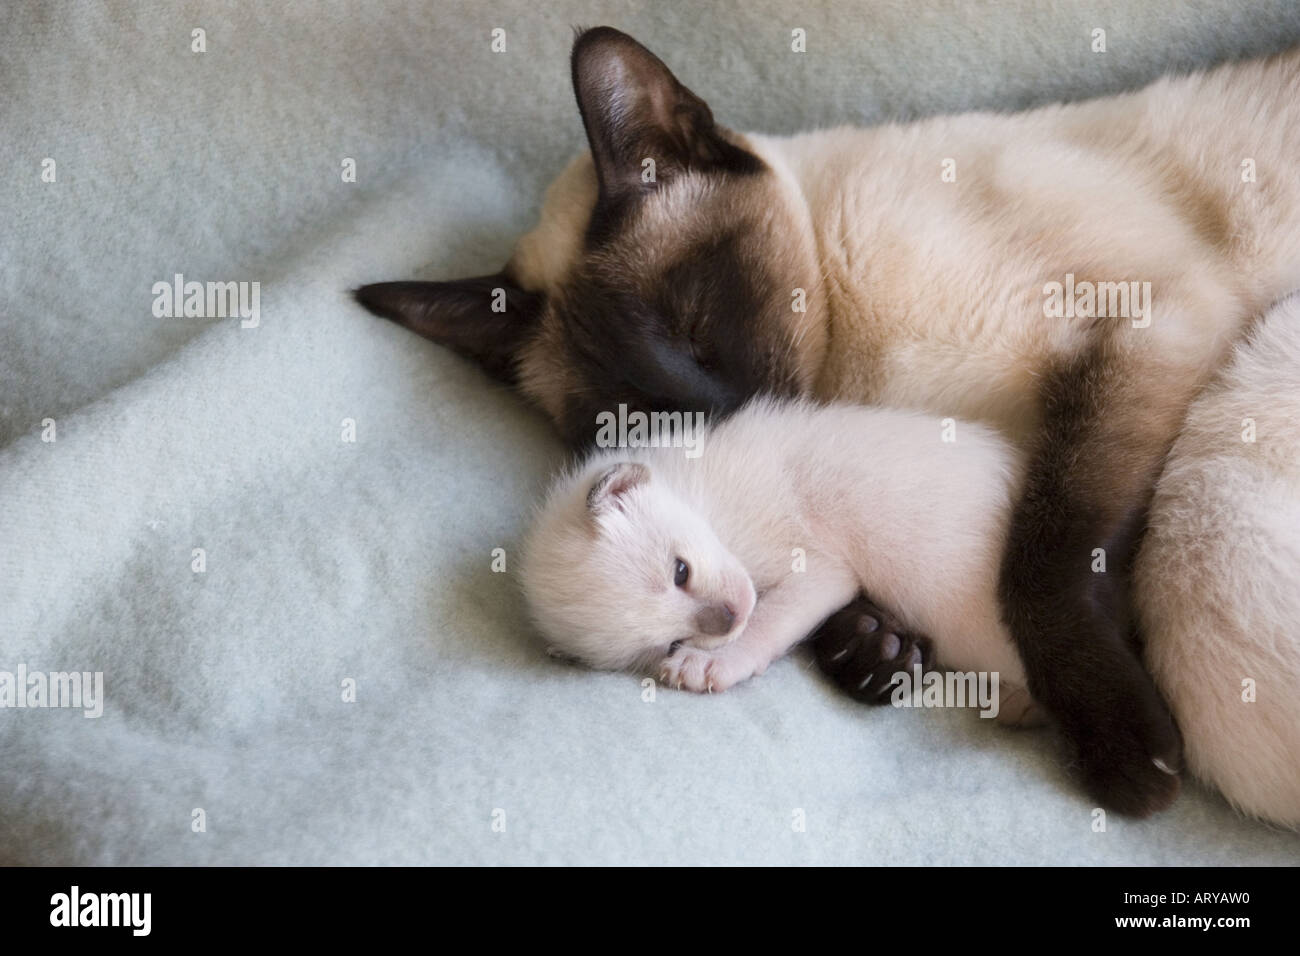 Female Siamese Cat With 2 Week Old Kitten Stock Photo 9229071 Alamy